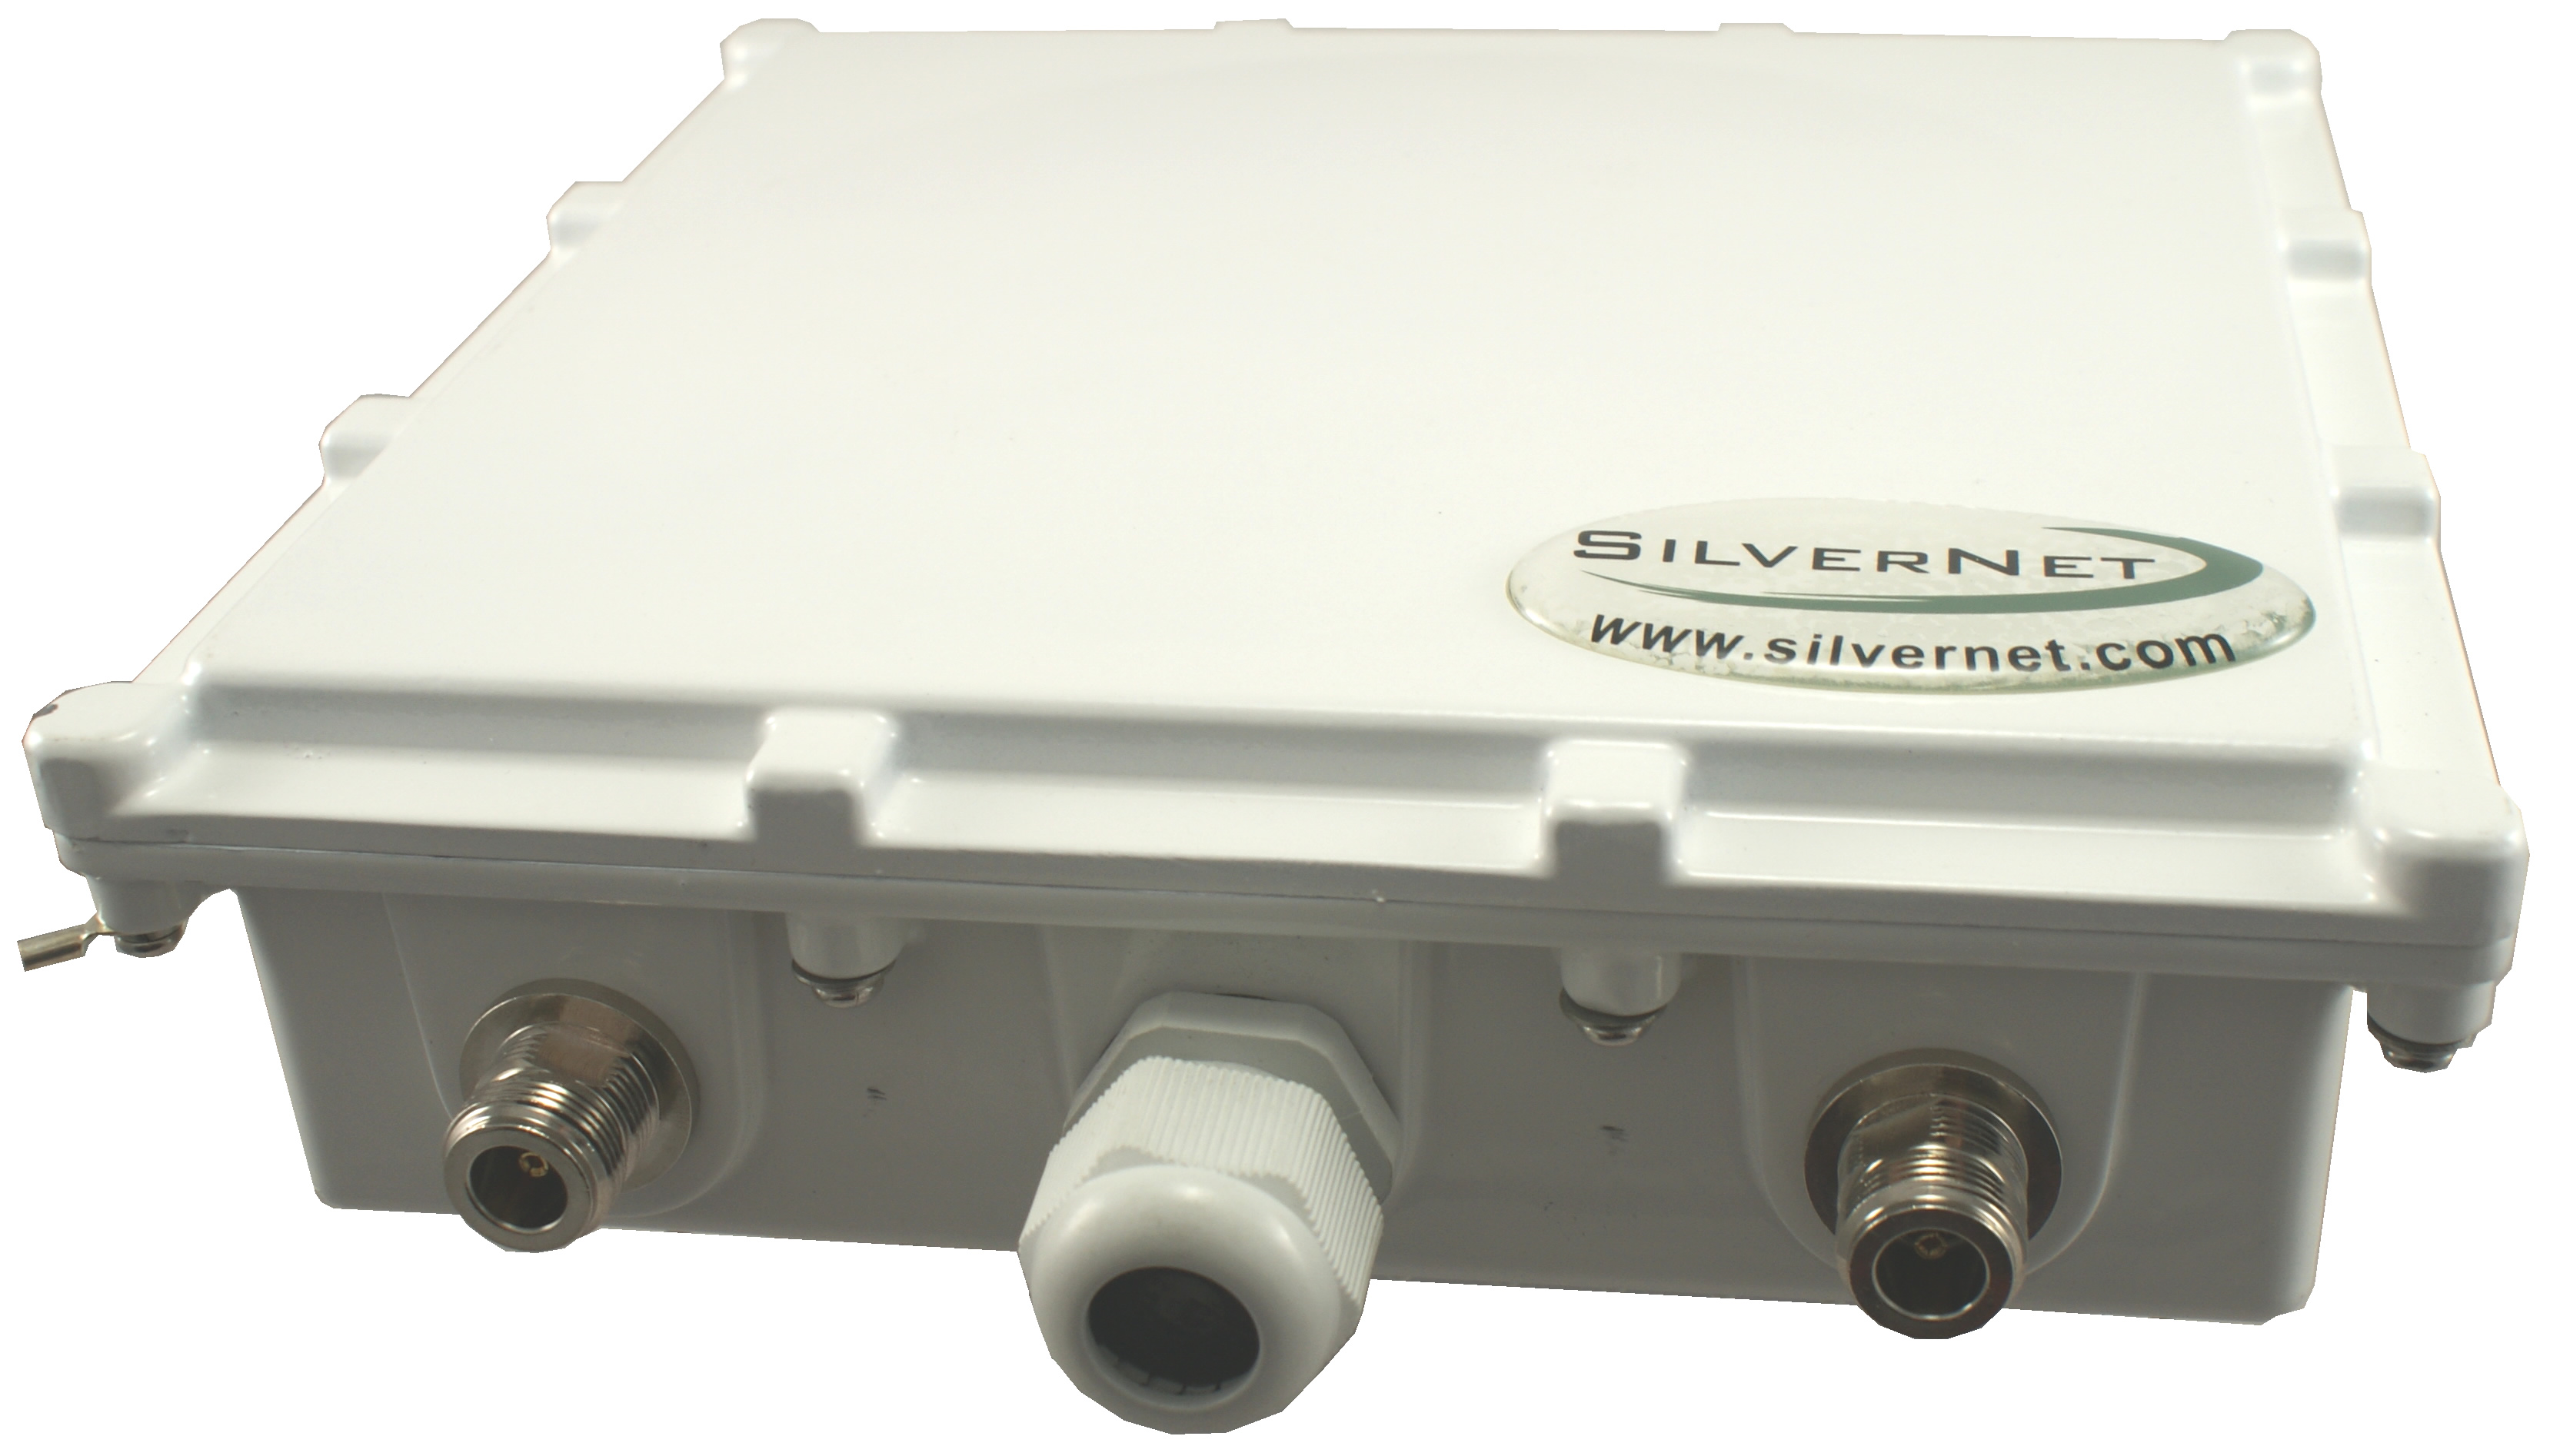 Multipoint - up to 240Mbps. BASE/AP - collector - Omni or Sector antenna required